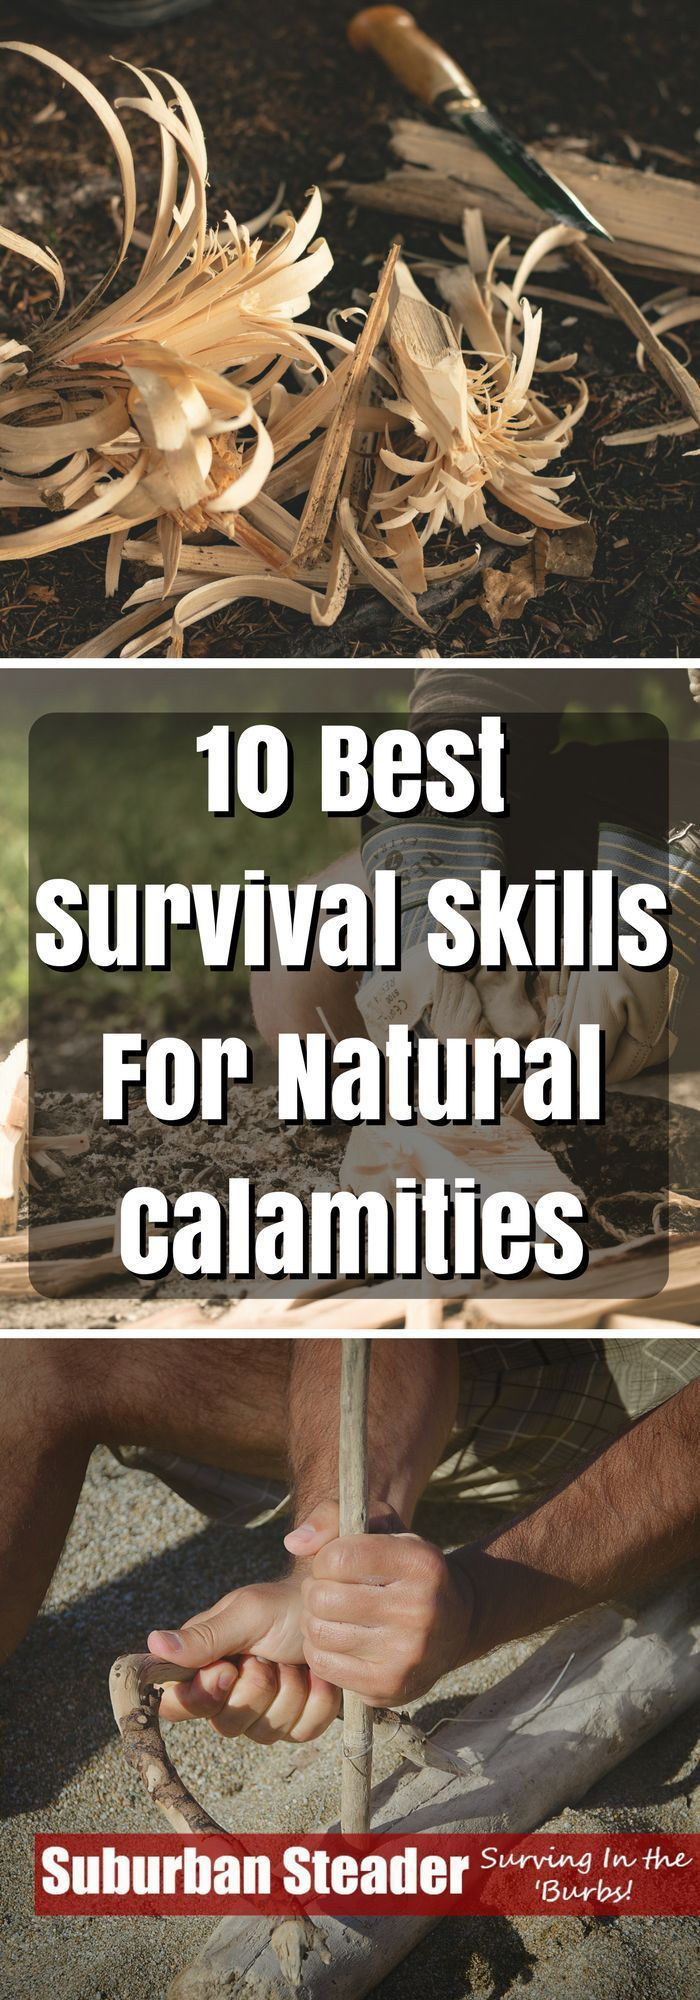 Tomorrow's comfort is never guaranteed. Learn these ten survival skills to make sure you're set up for success.